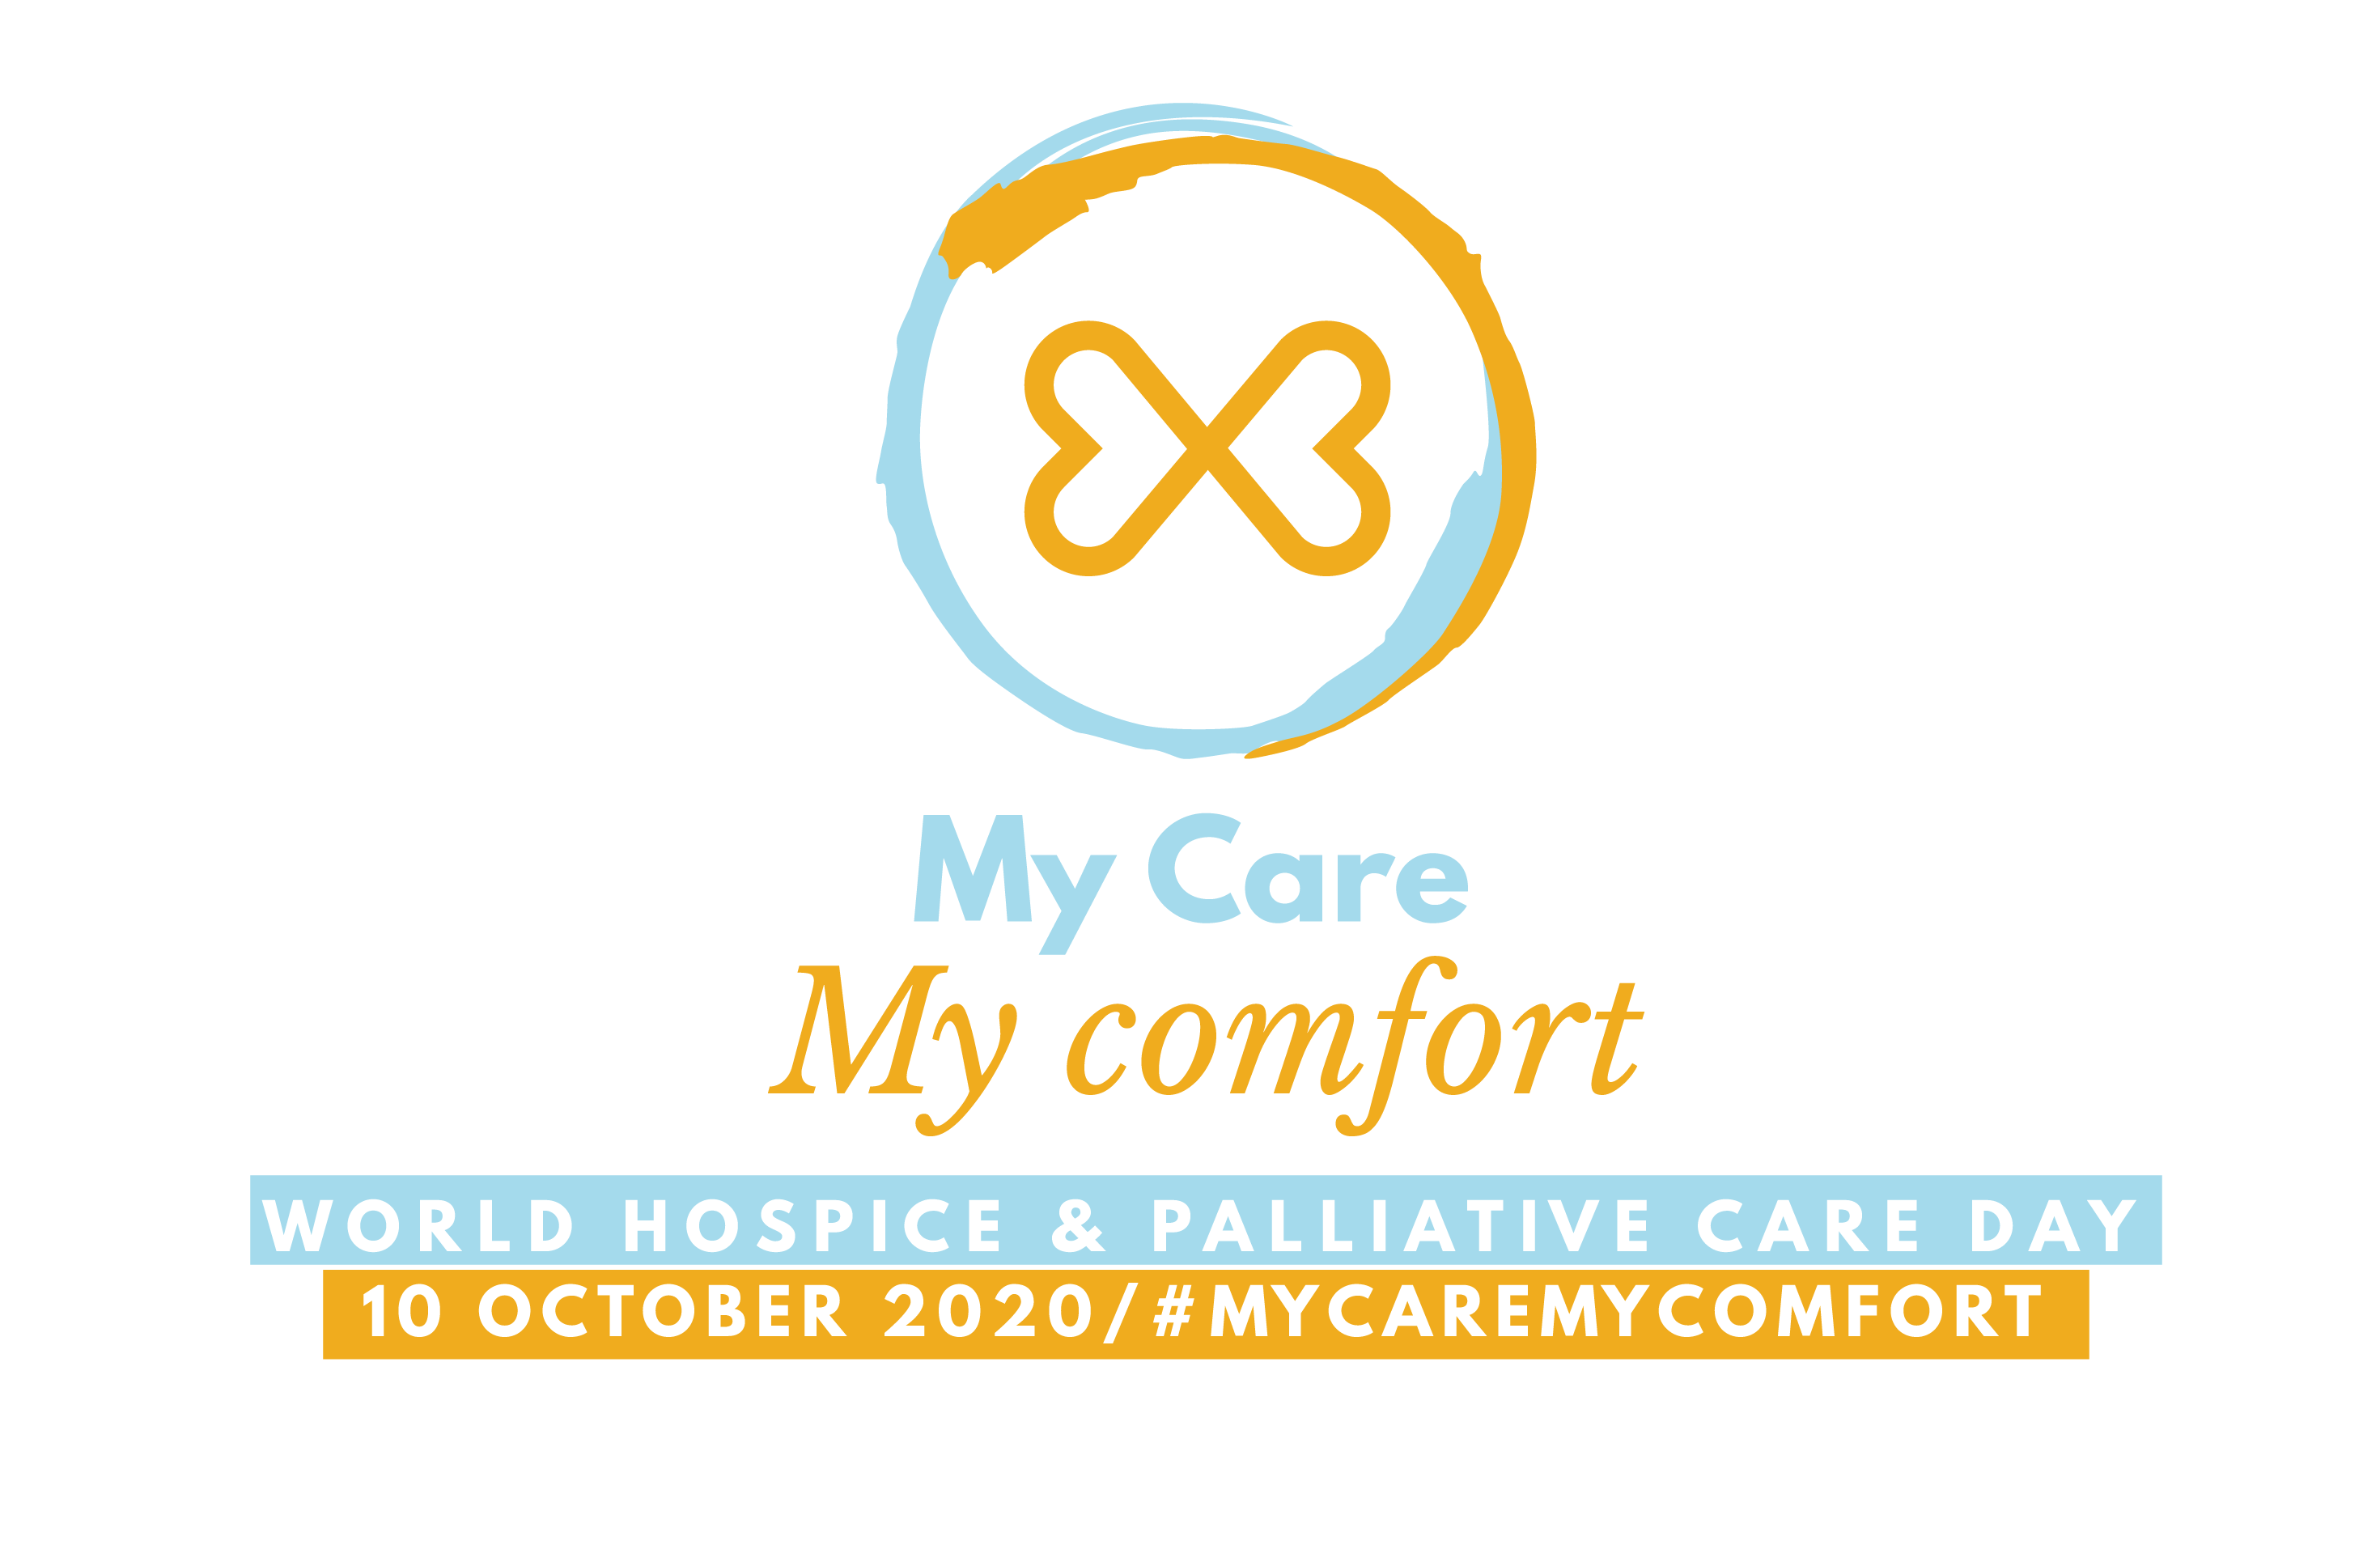 Africa joins the rest of the world to commemorate World Hospice & Palliative Care Day 2020